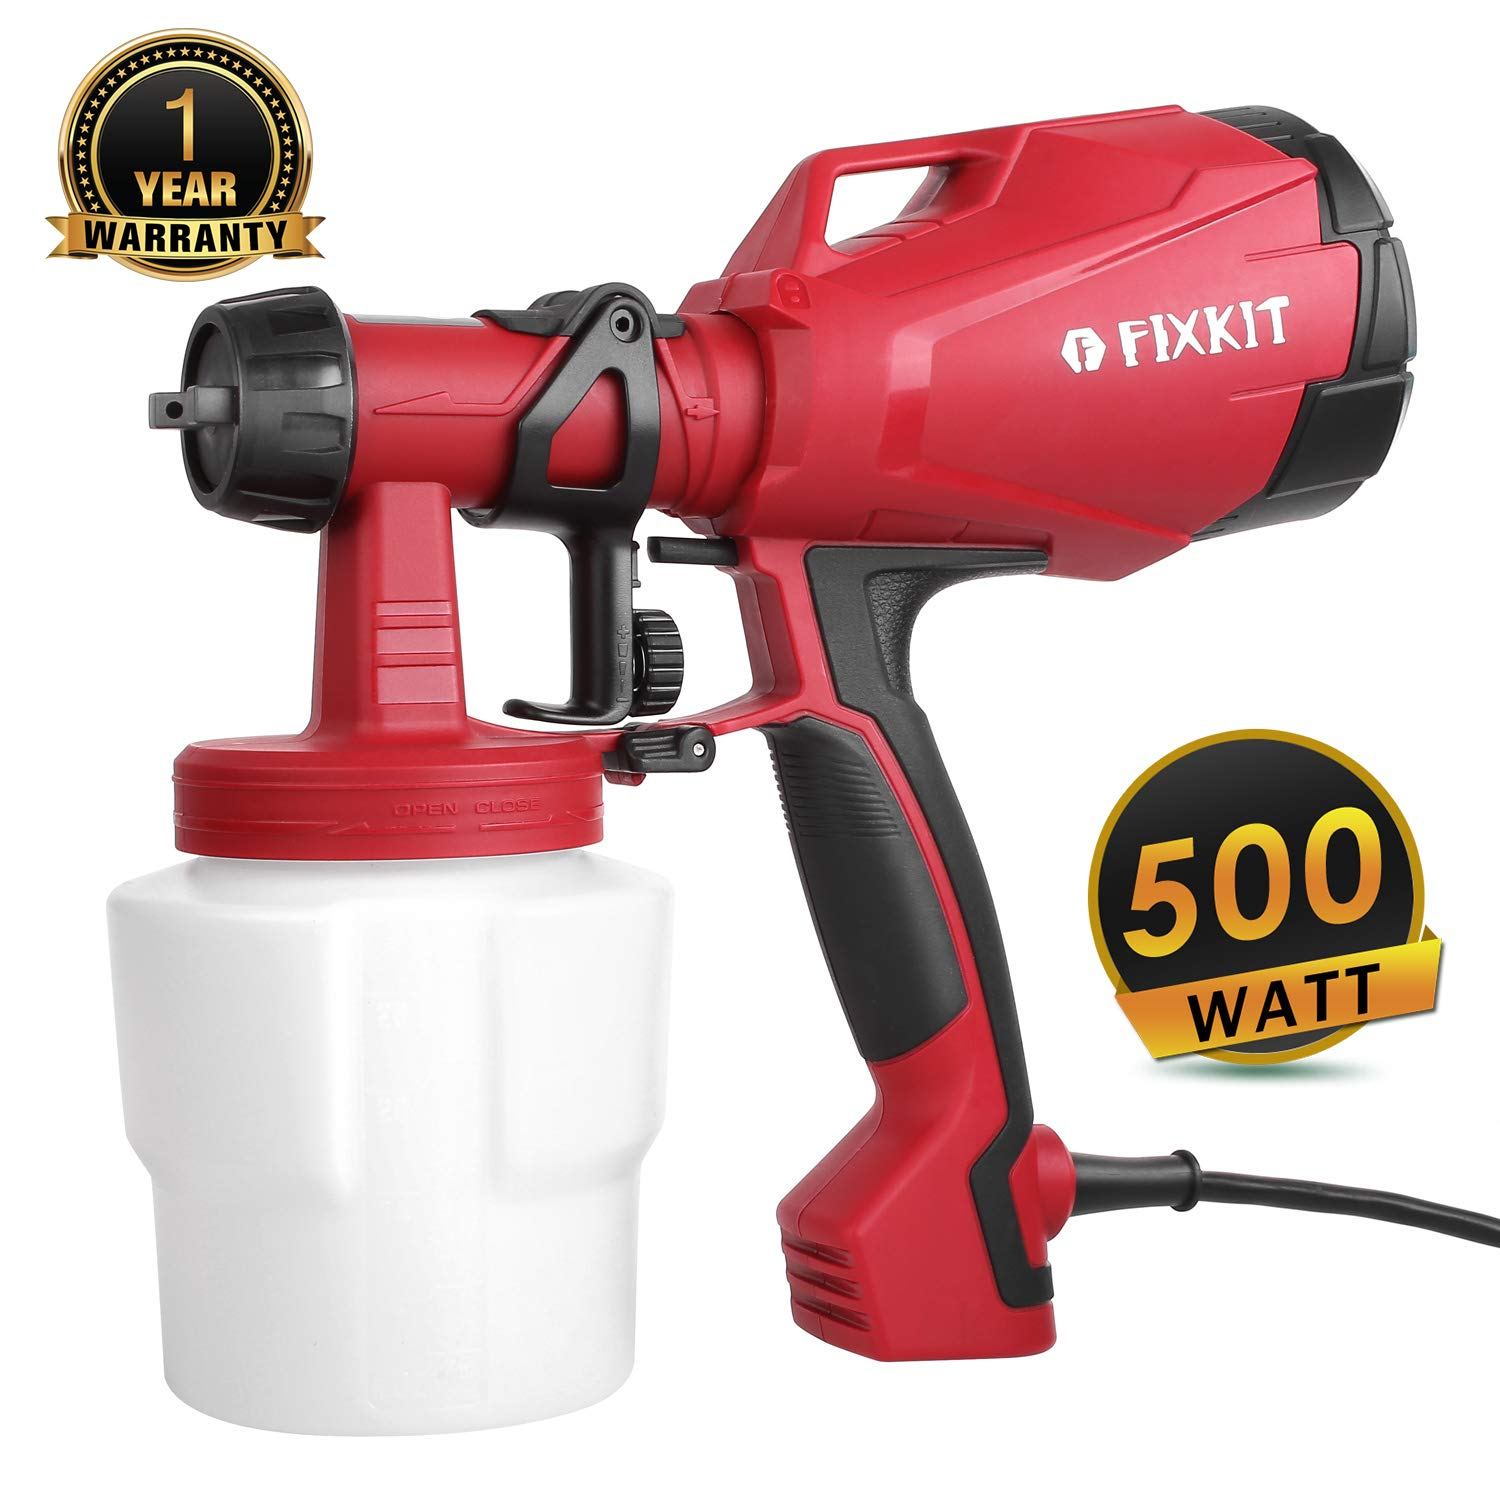 HVLP Paint Sprayer, 500 Watt High Power Electric Spray Gun with Three Spray Patterns, Professional Painting Tool with 1000ml Detachable Container for Home Spray Painting & Painting Projects by FIXKIT